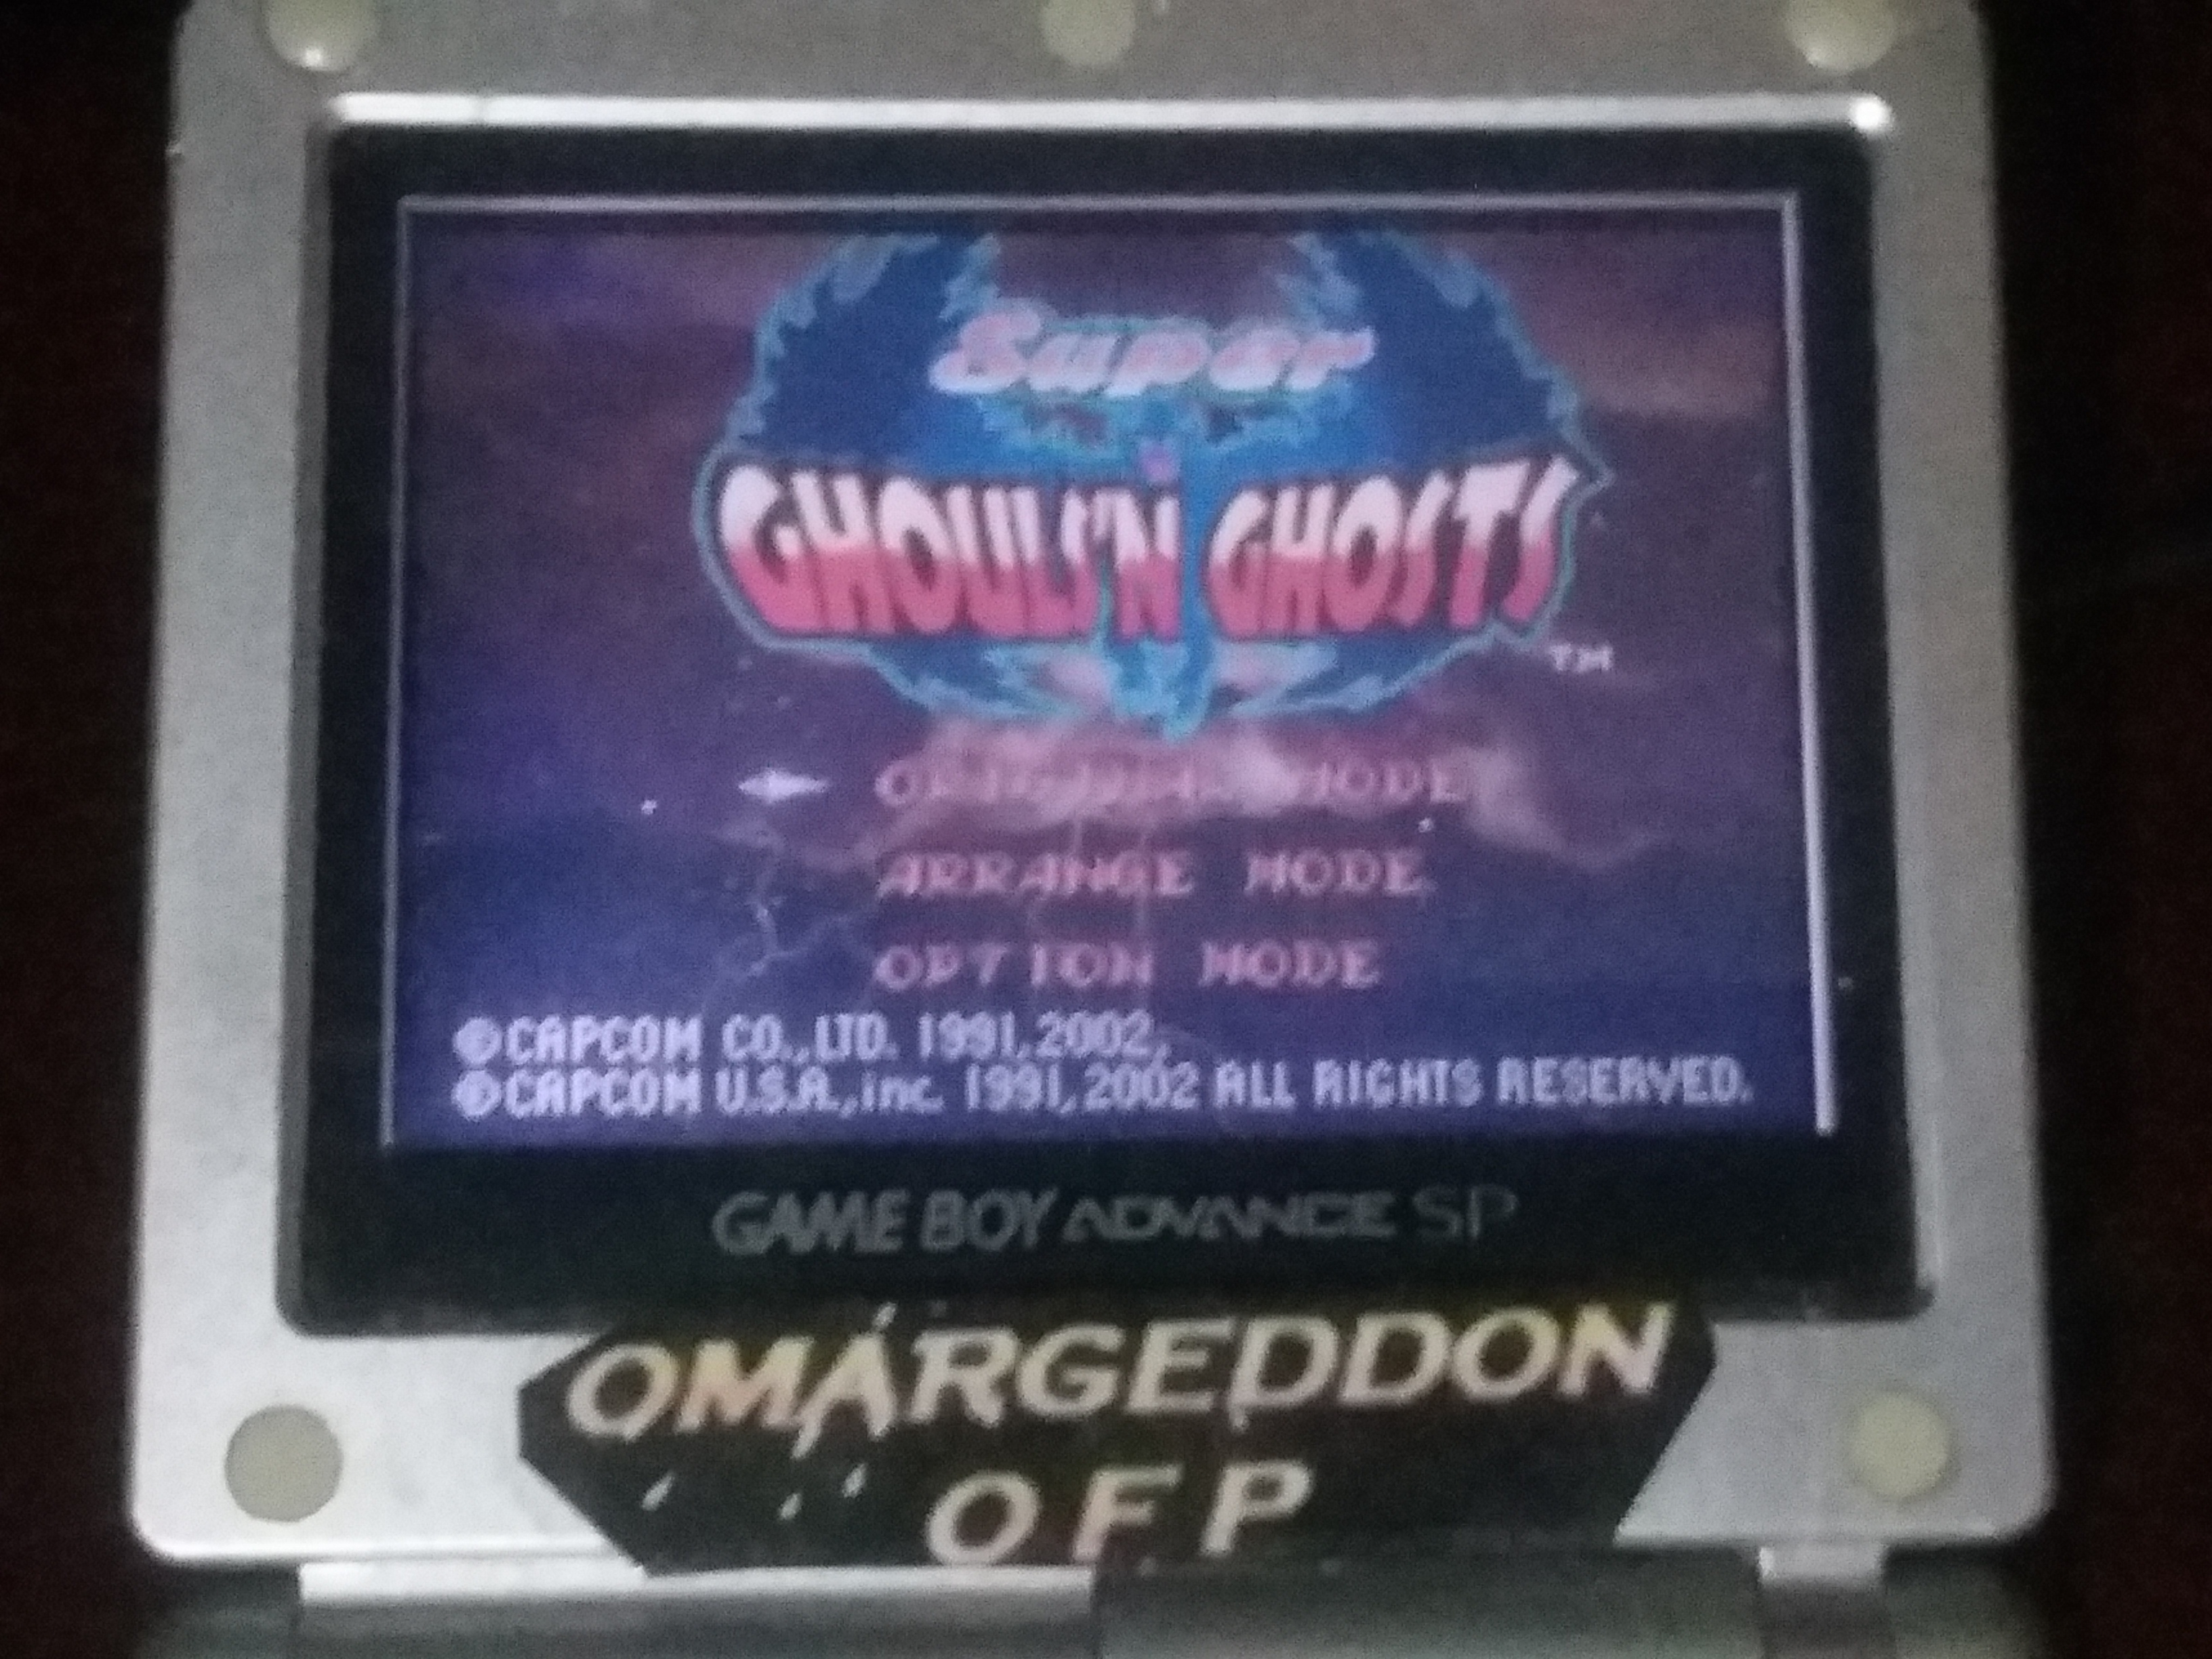 omargeddon: Super Ghouls N Ghosts [Original Mode] (GBA) 11,500 points on 2018-04-25 20:43:17